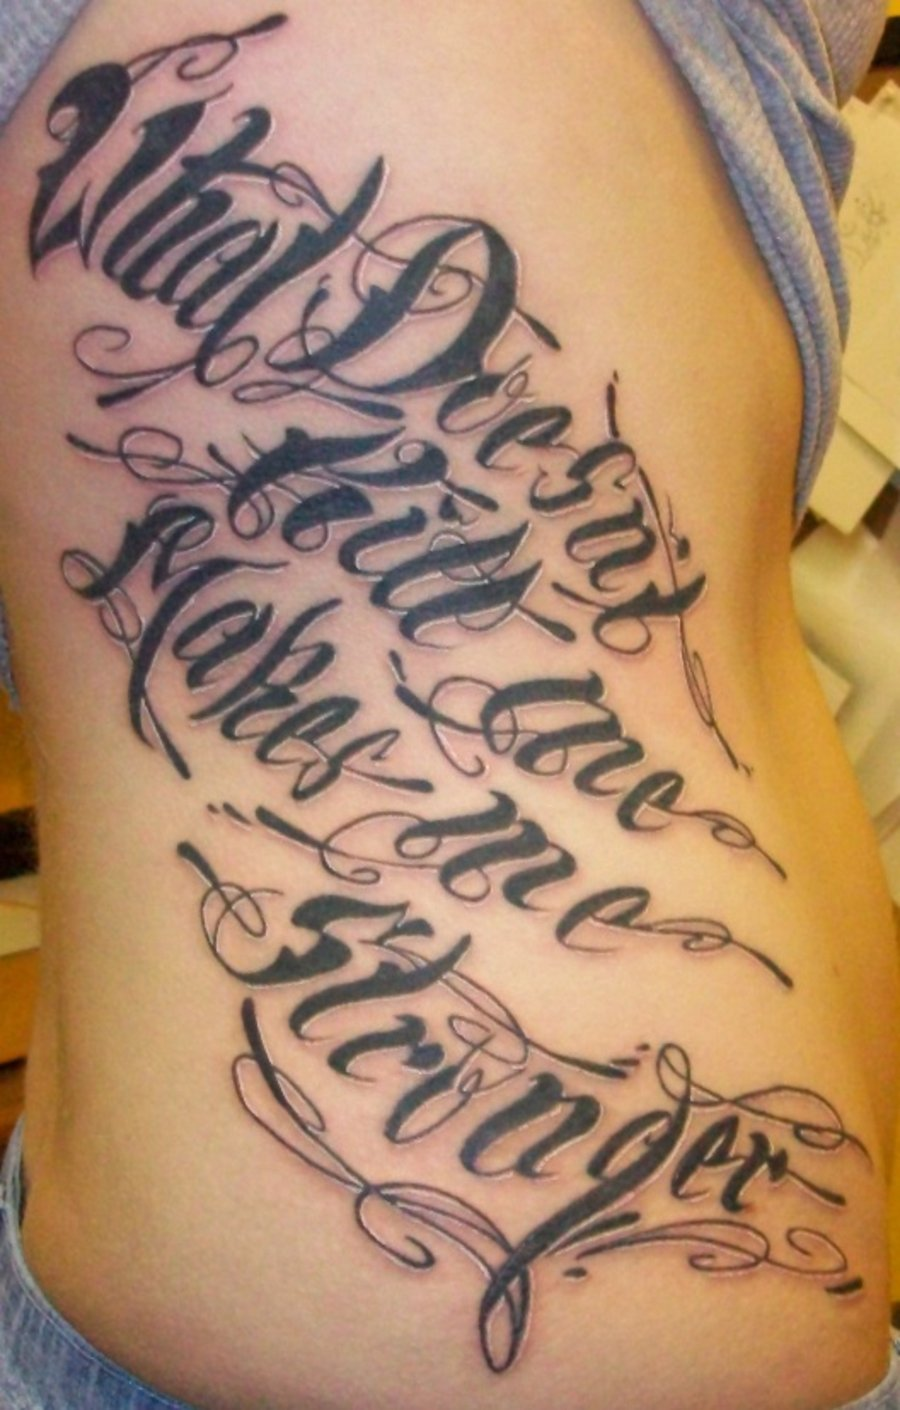 Lettering tattoos my tattoos zone lettering tattoos altavistaventures Gallery